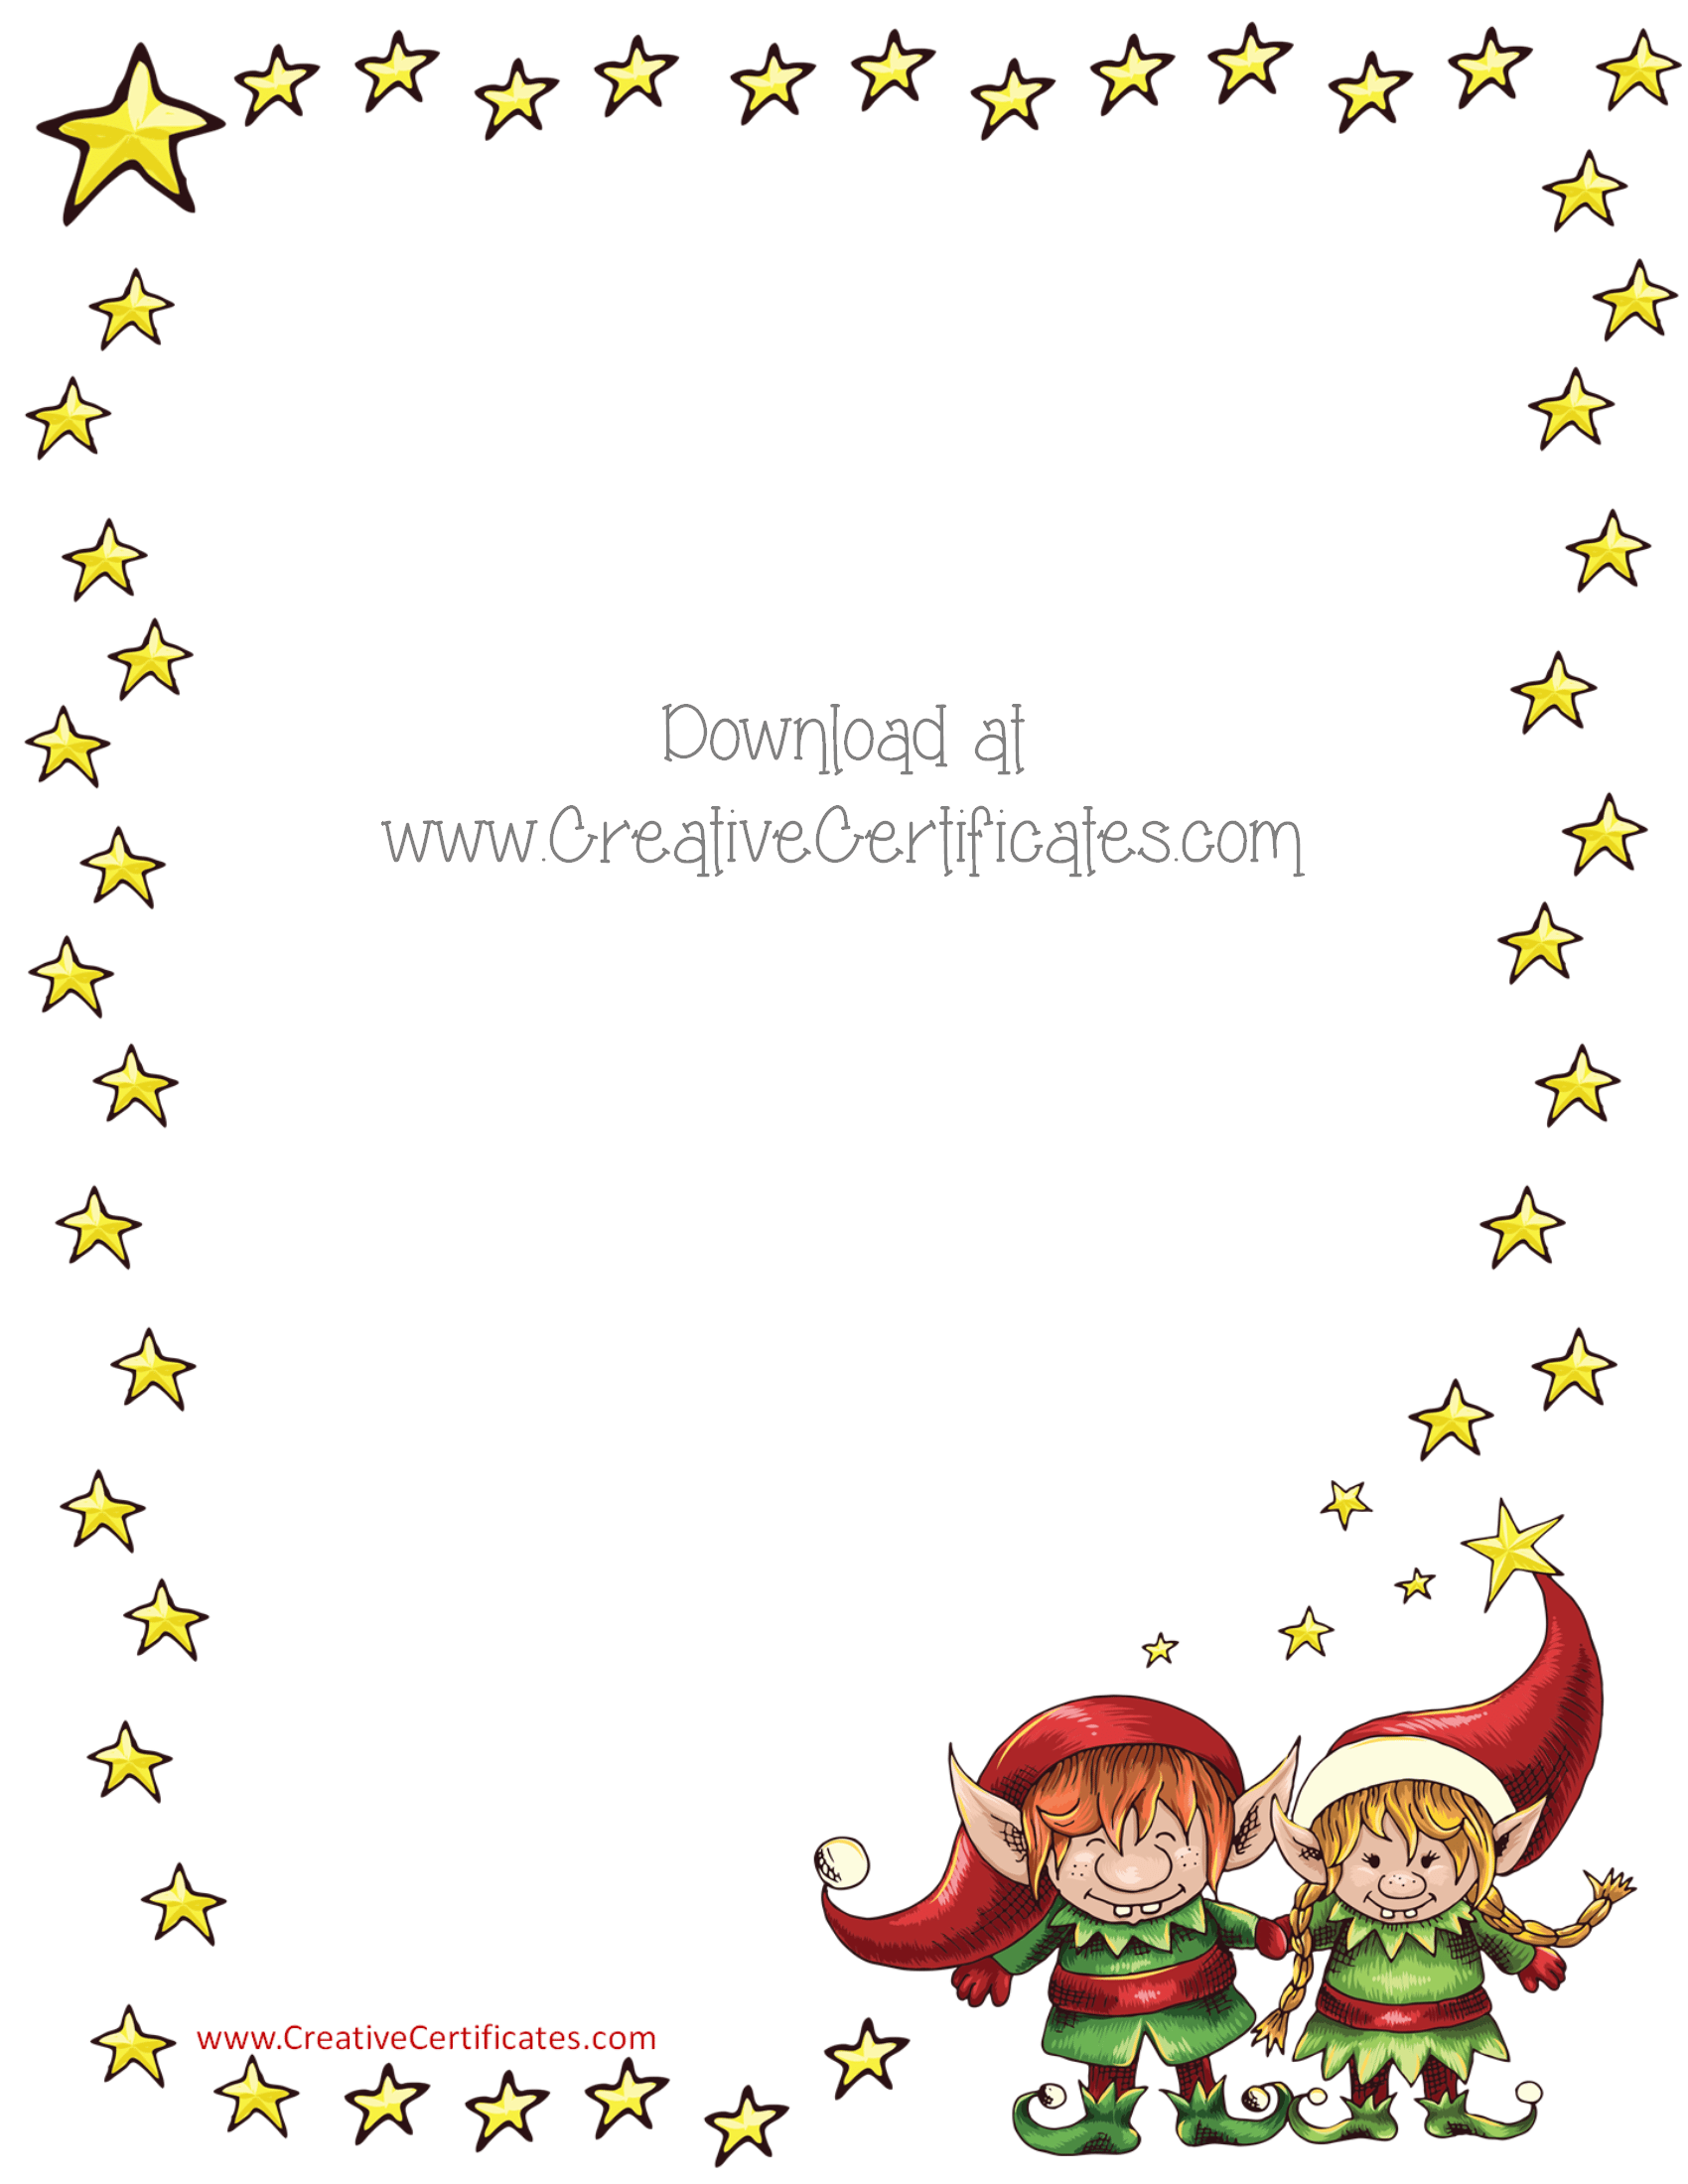 Free Christmas Border Templates - Customize Online or Print as is